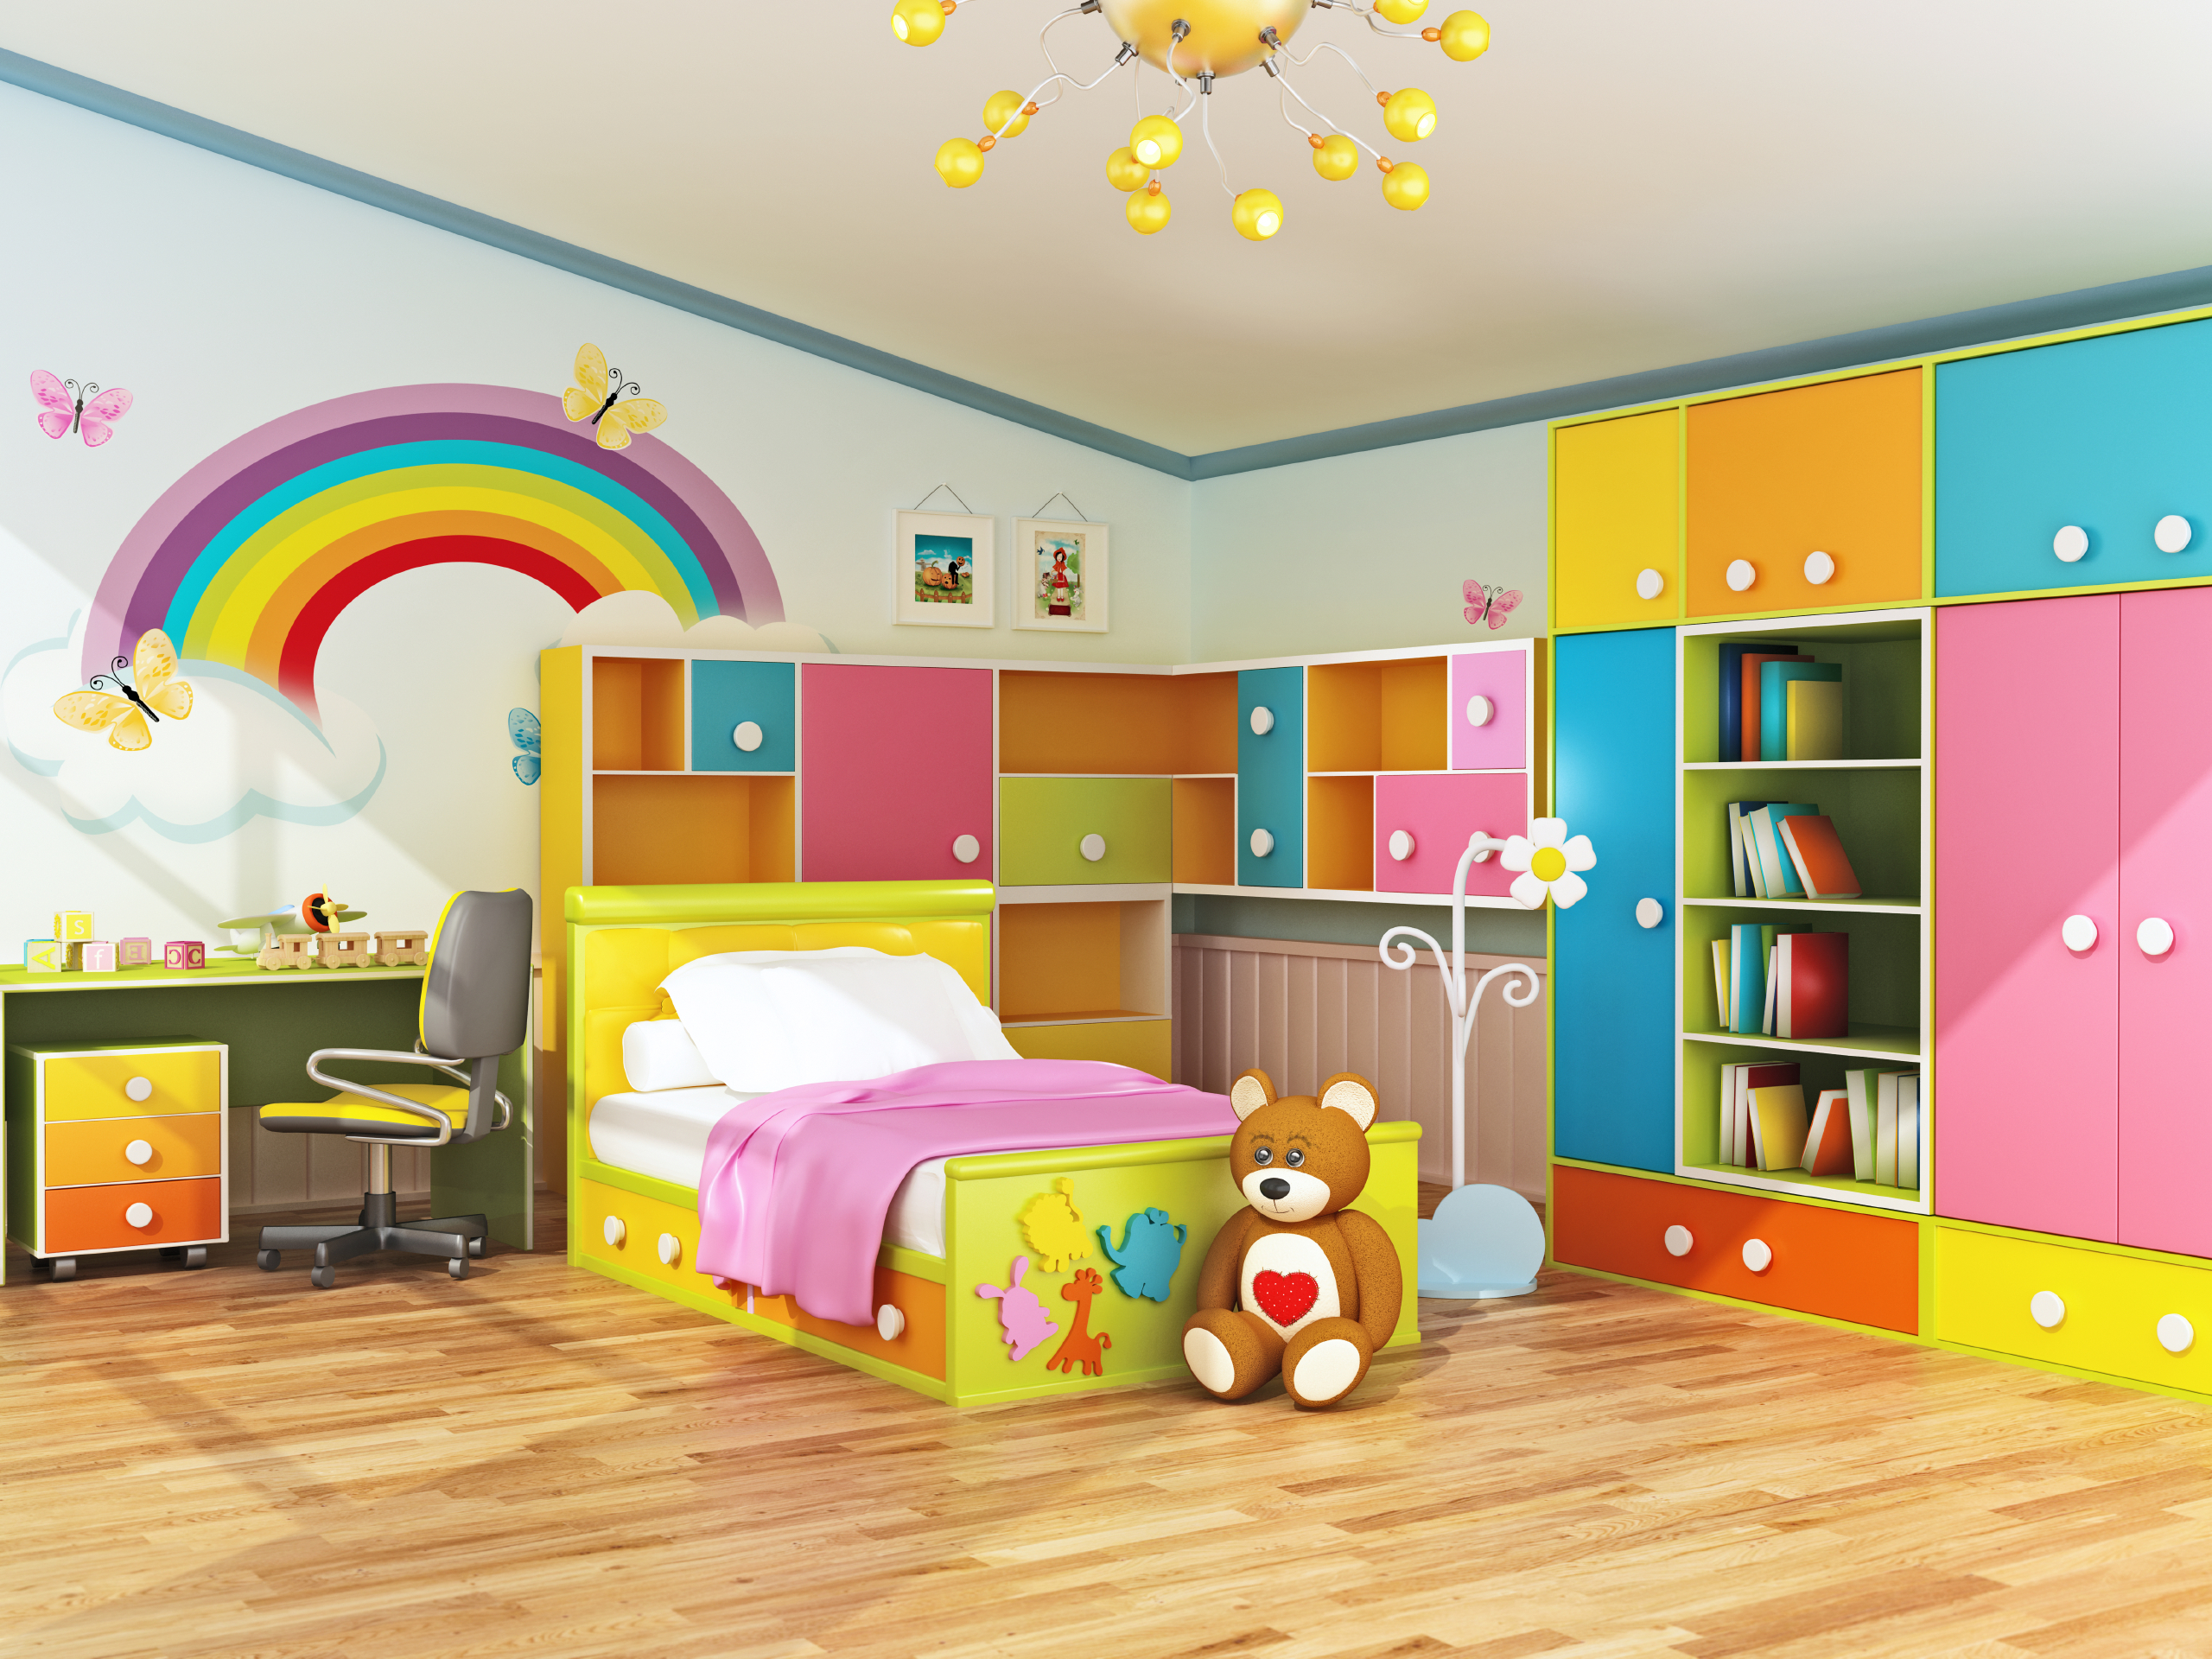 Colors For Kids Bedrooms Plans plan ahead when decorating kids' bedrooms | rismedia's housecall